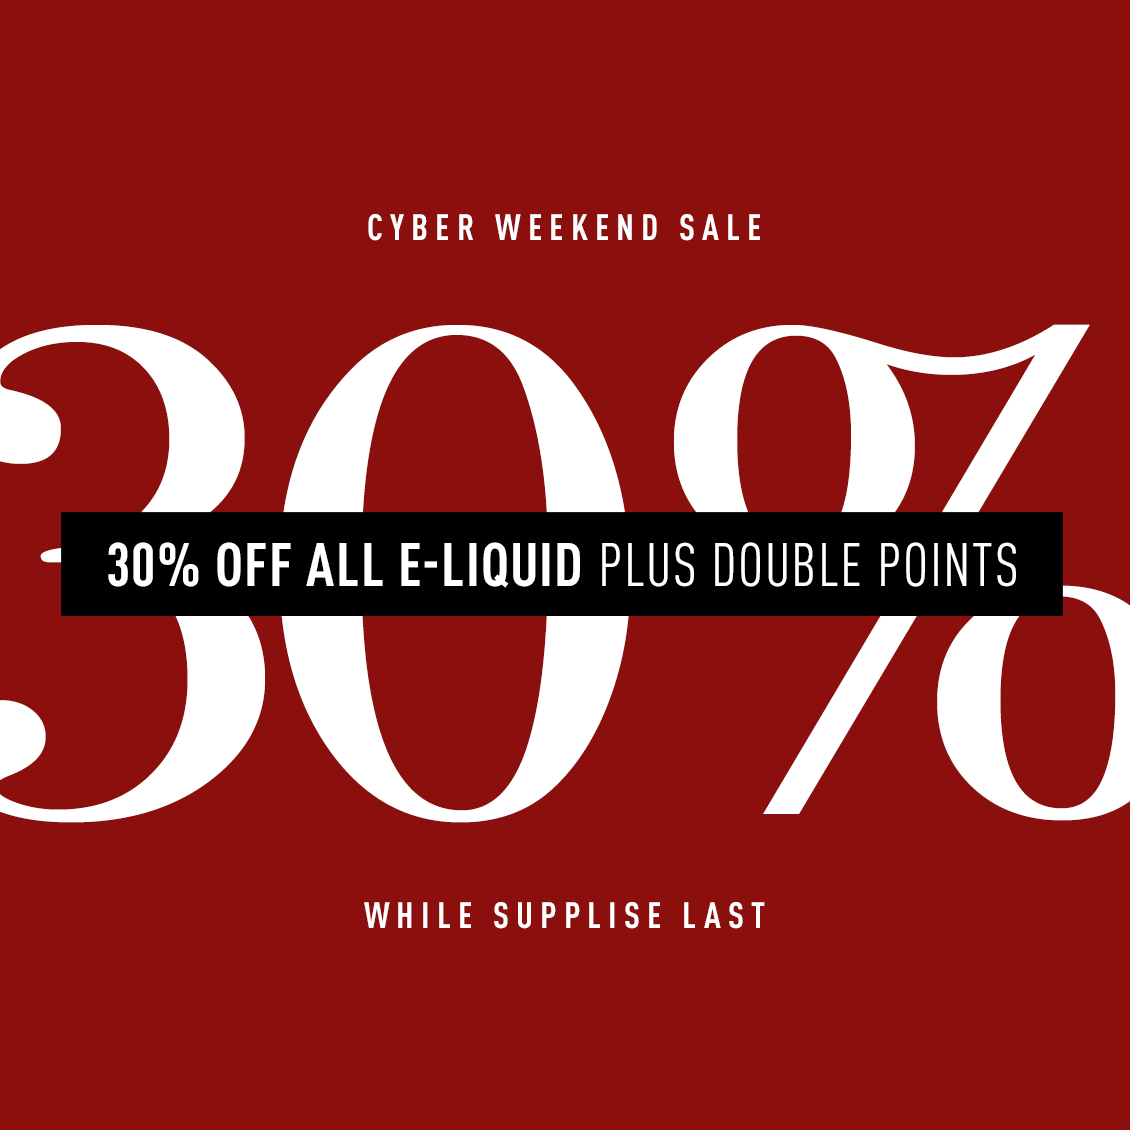 Cyber Weekend Sale: 30% off + double points. Click to shop now.